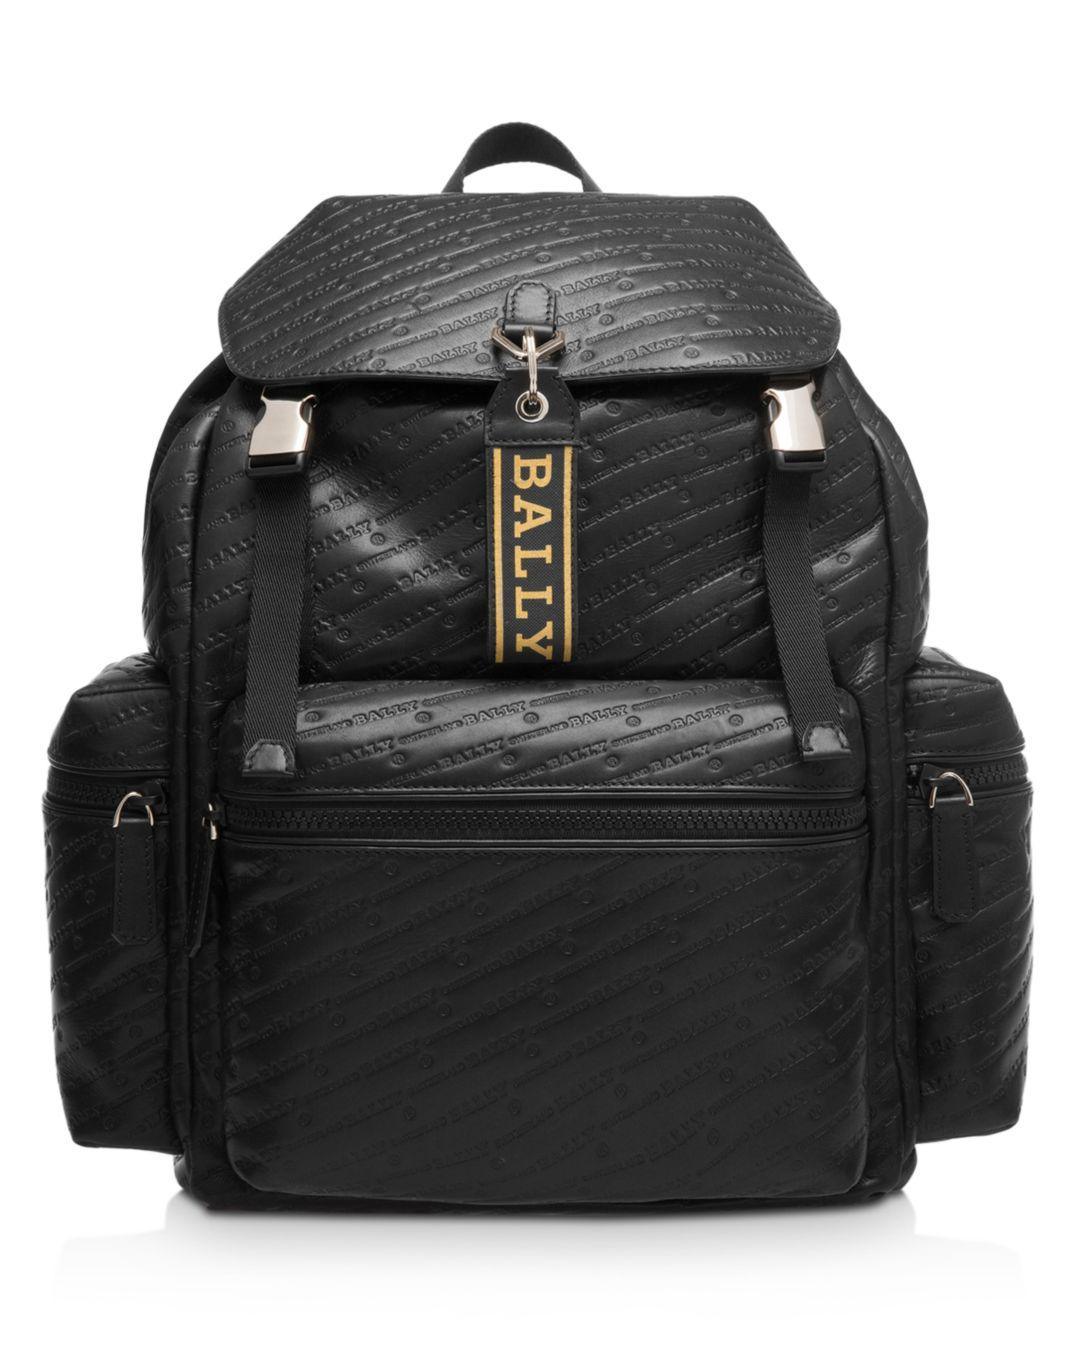 Lyst - Bally Crew Leather Backpack in Black for Men - Save  51.02564102564103% 17b00e314d